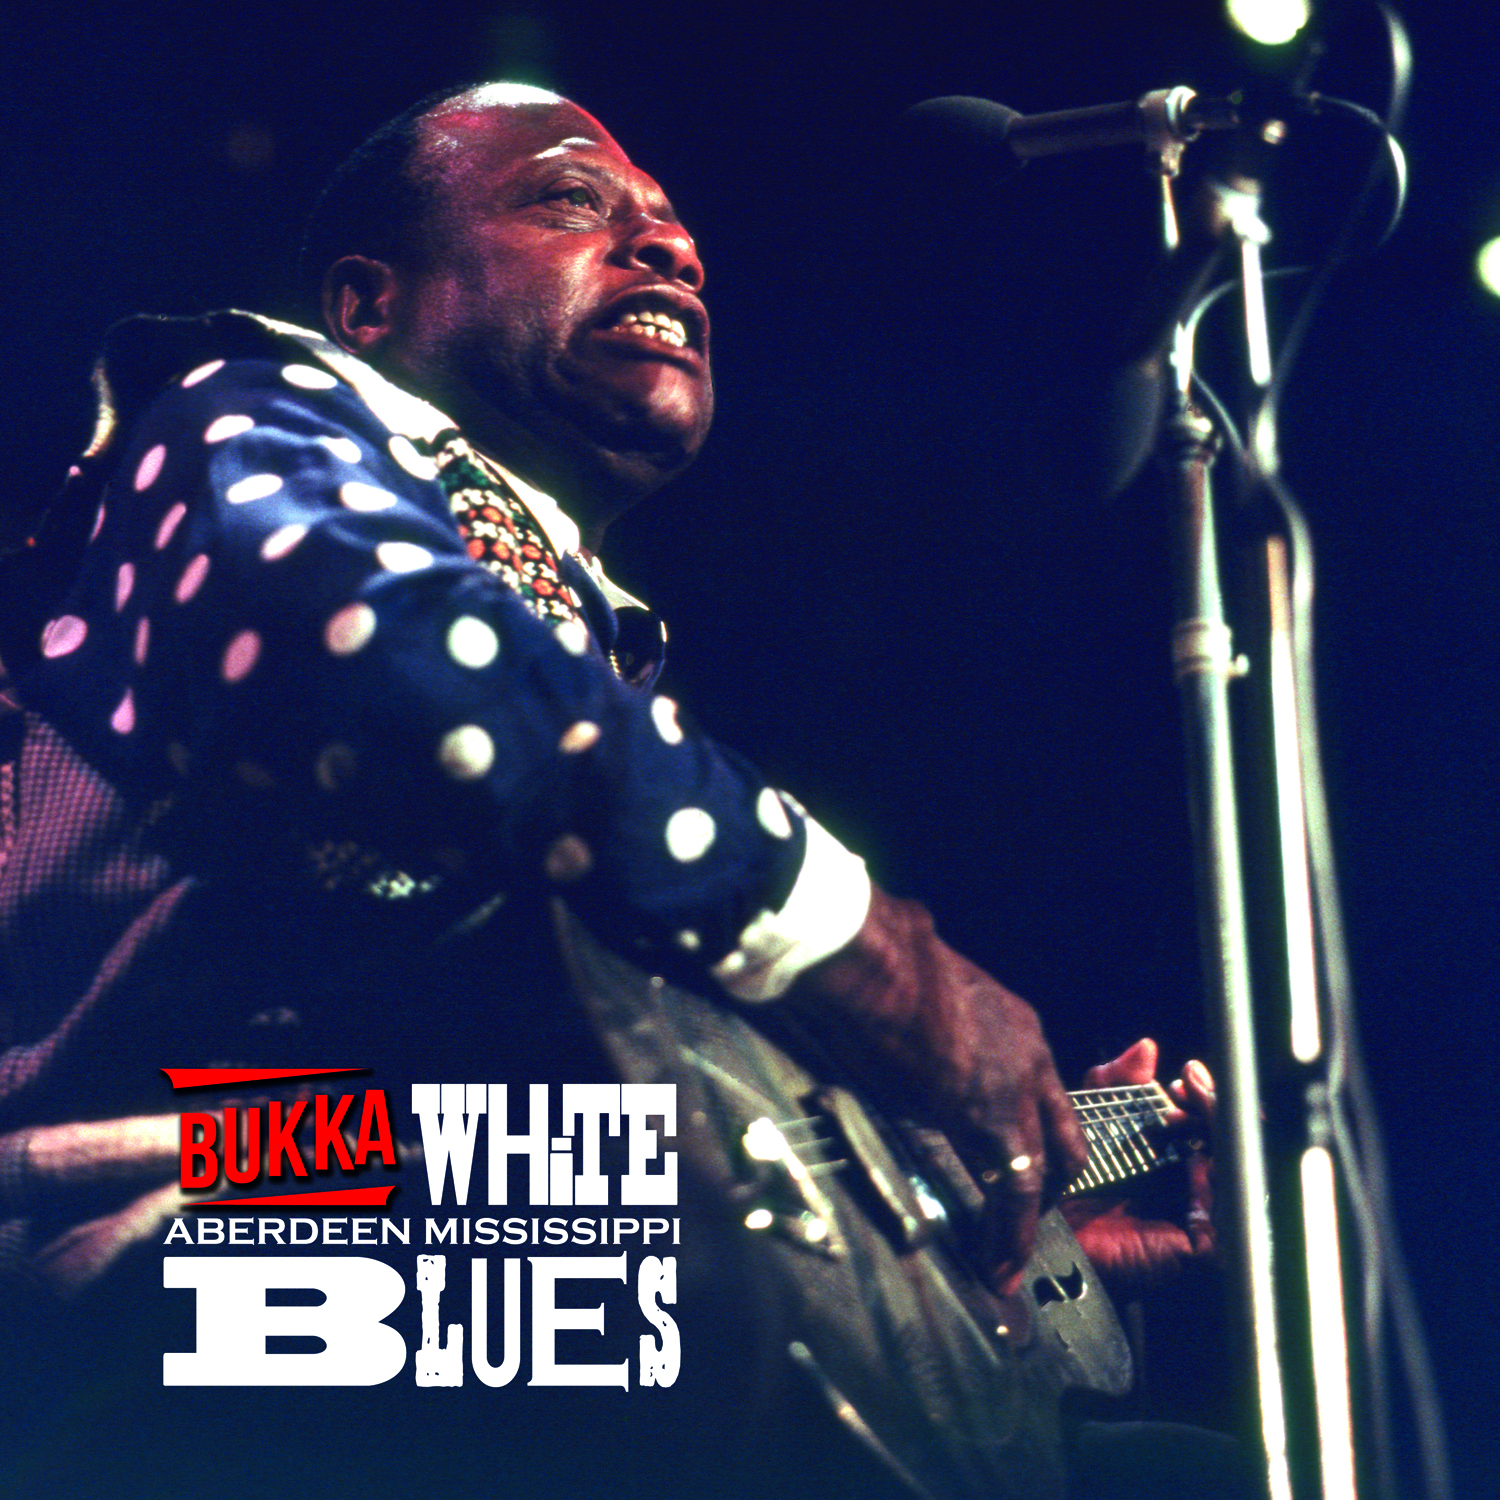 Bukka White - Aberdeen, Mississippi Blues (LP)